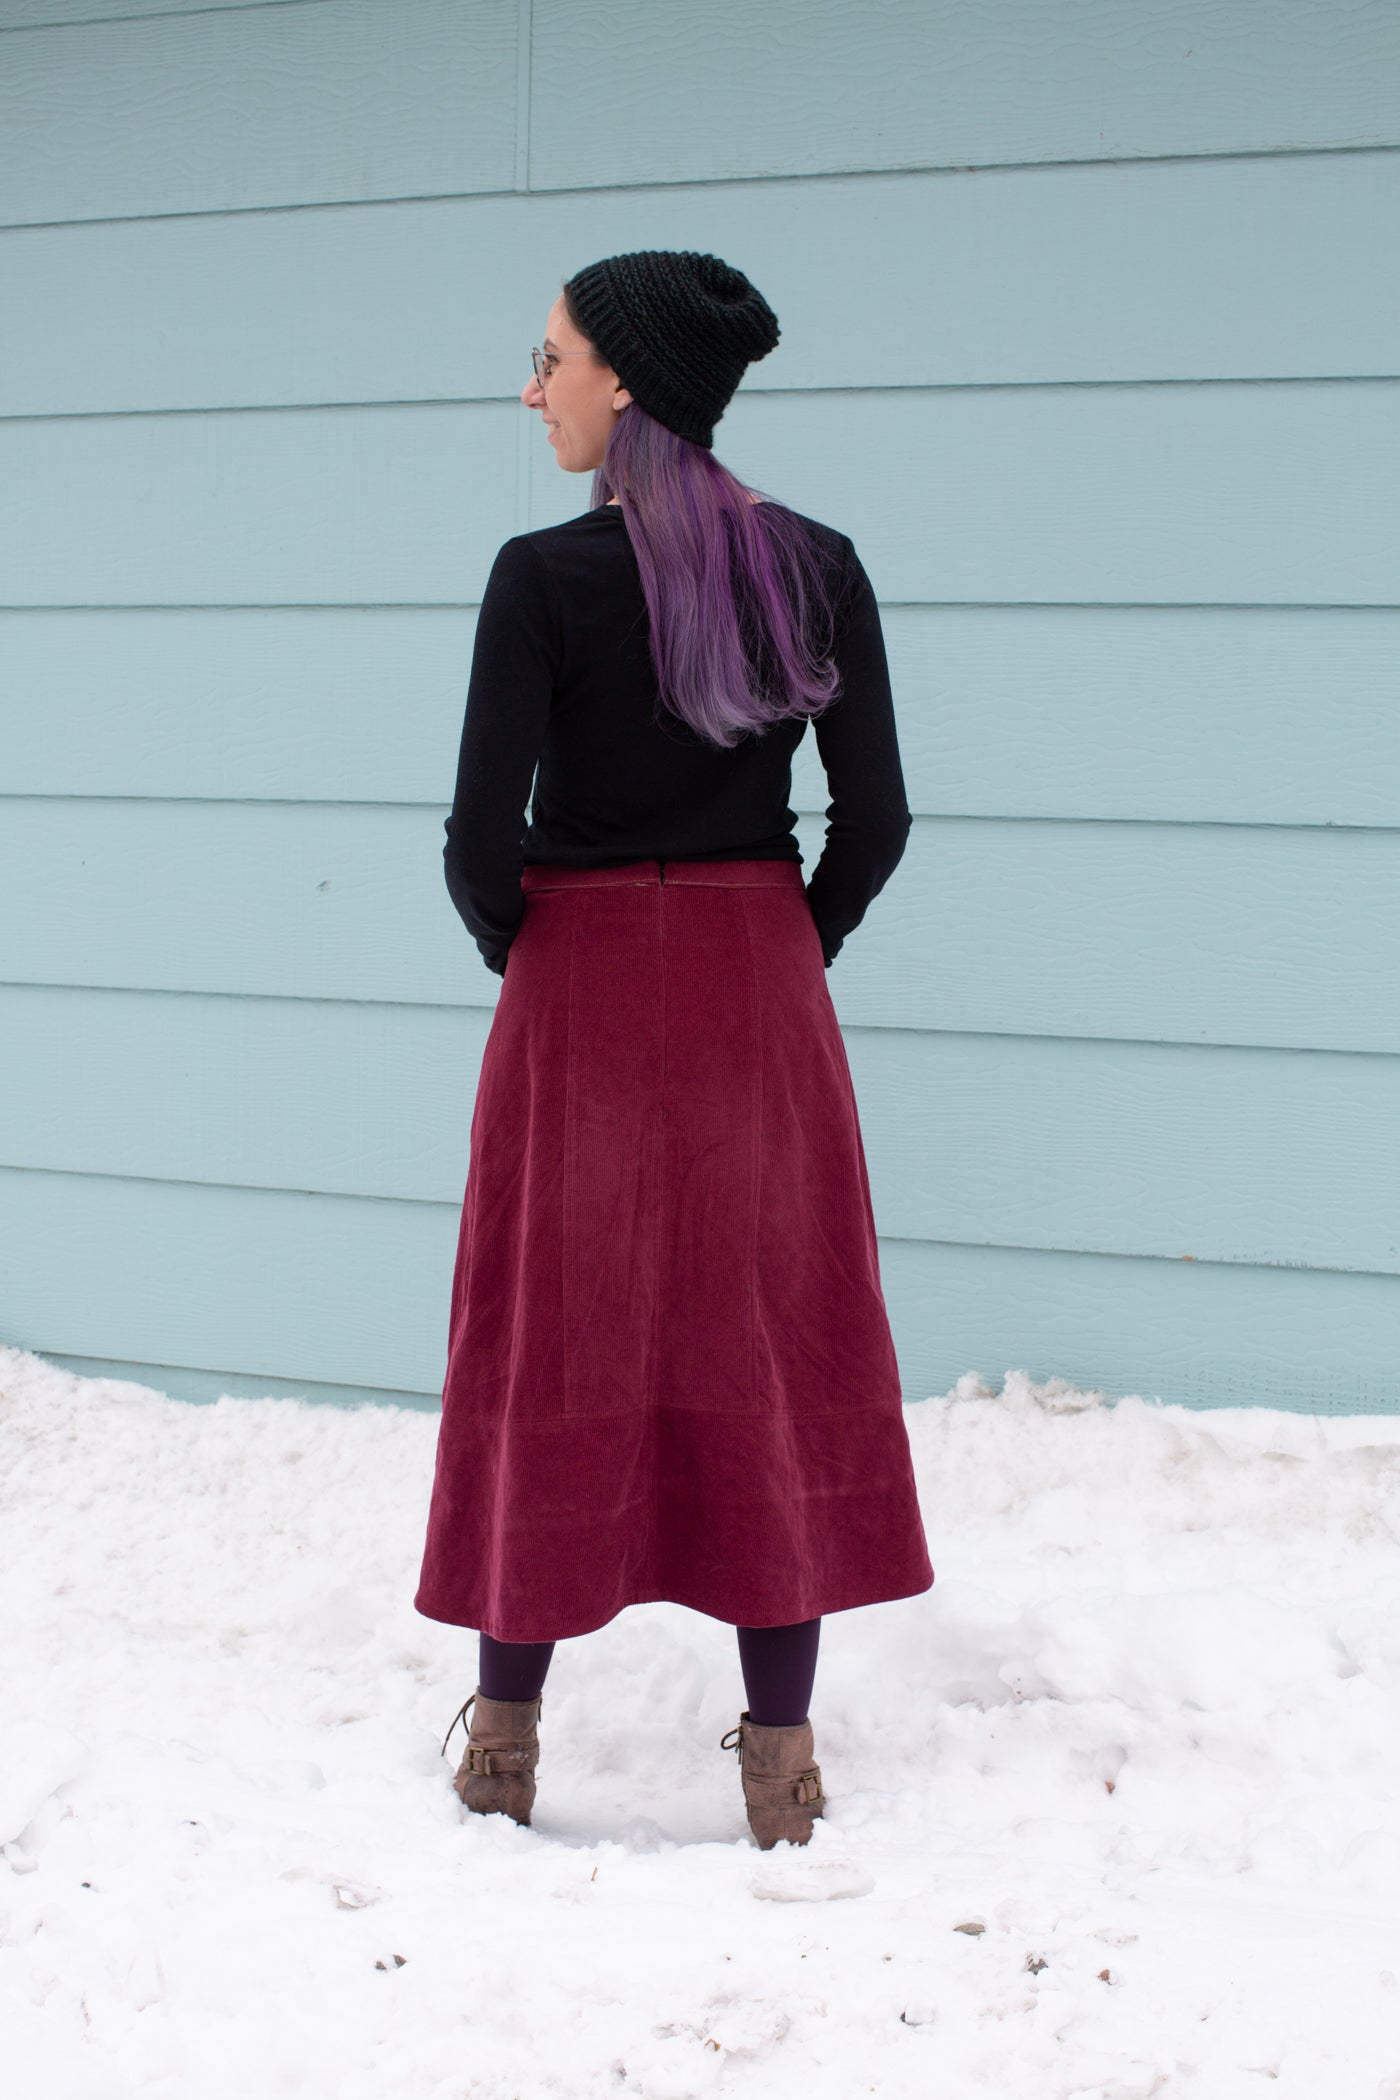 Aly is wearing a Robert Kaufman Corduroy skirt in merlot with a black long sleeve top.  Aly is standing in snow against a sea blue wall facing away from the camera, showing the back of the pattern.